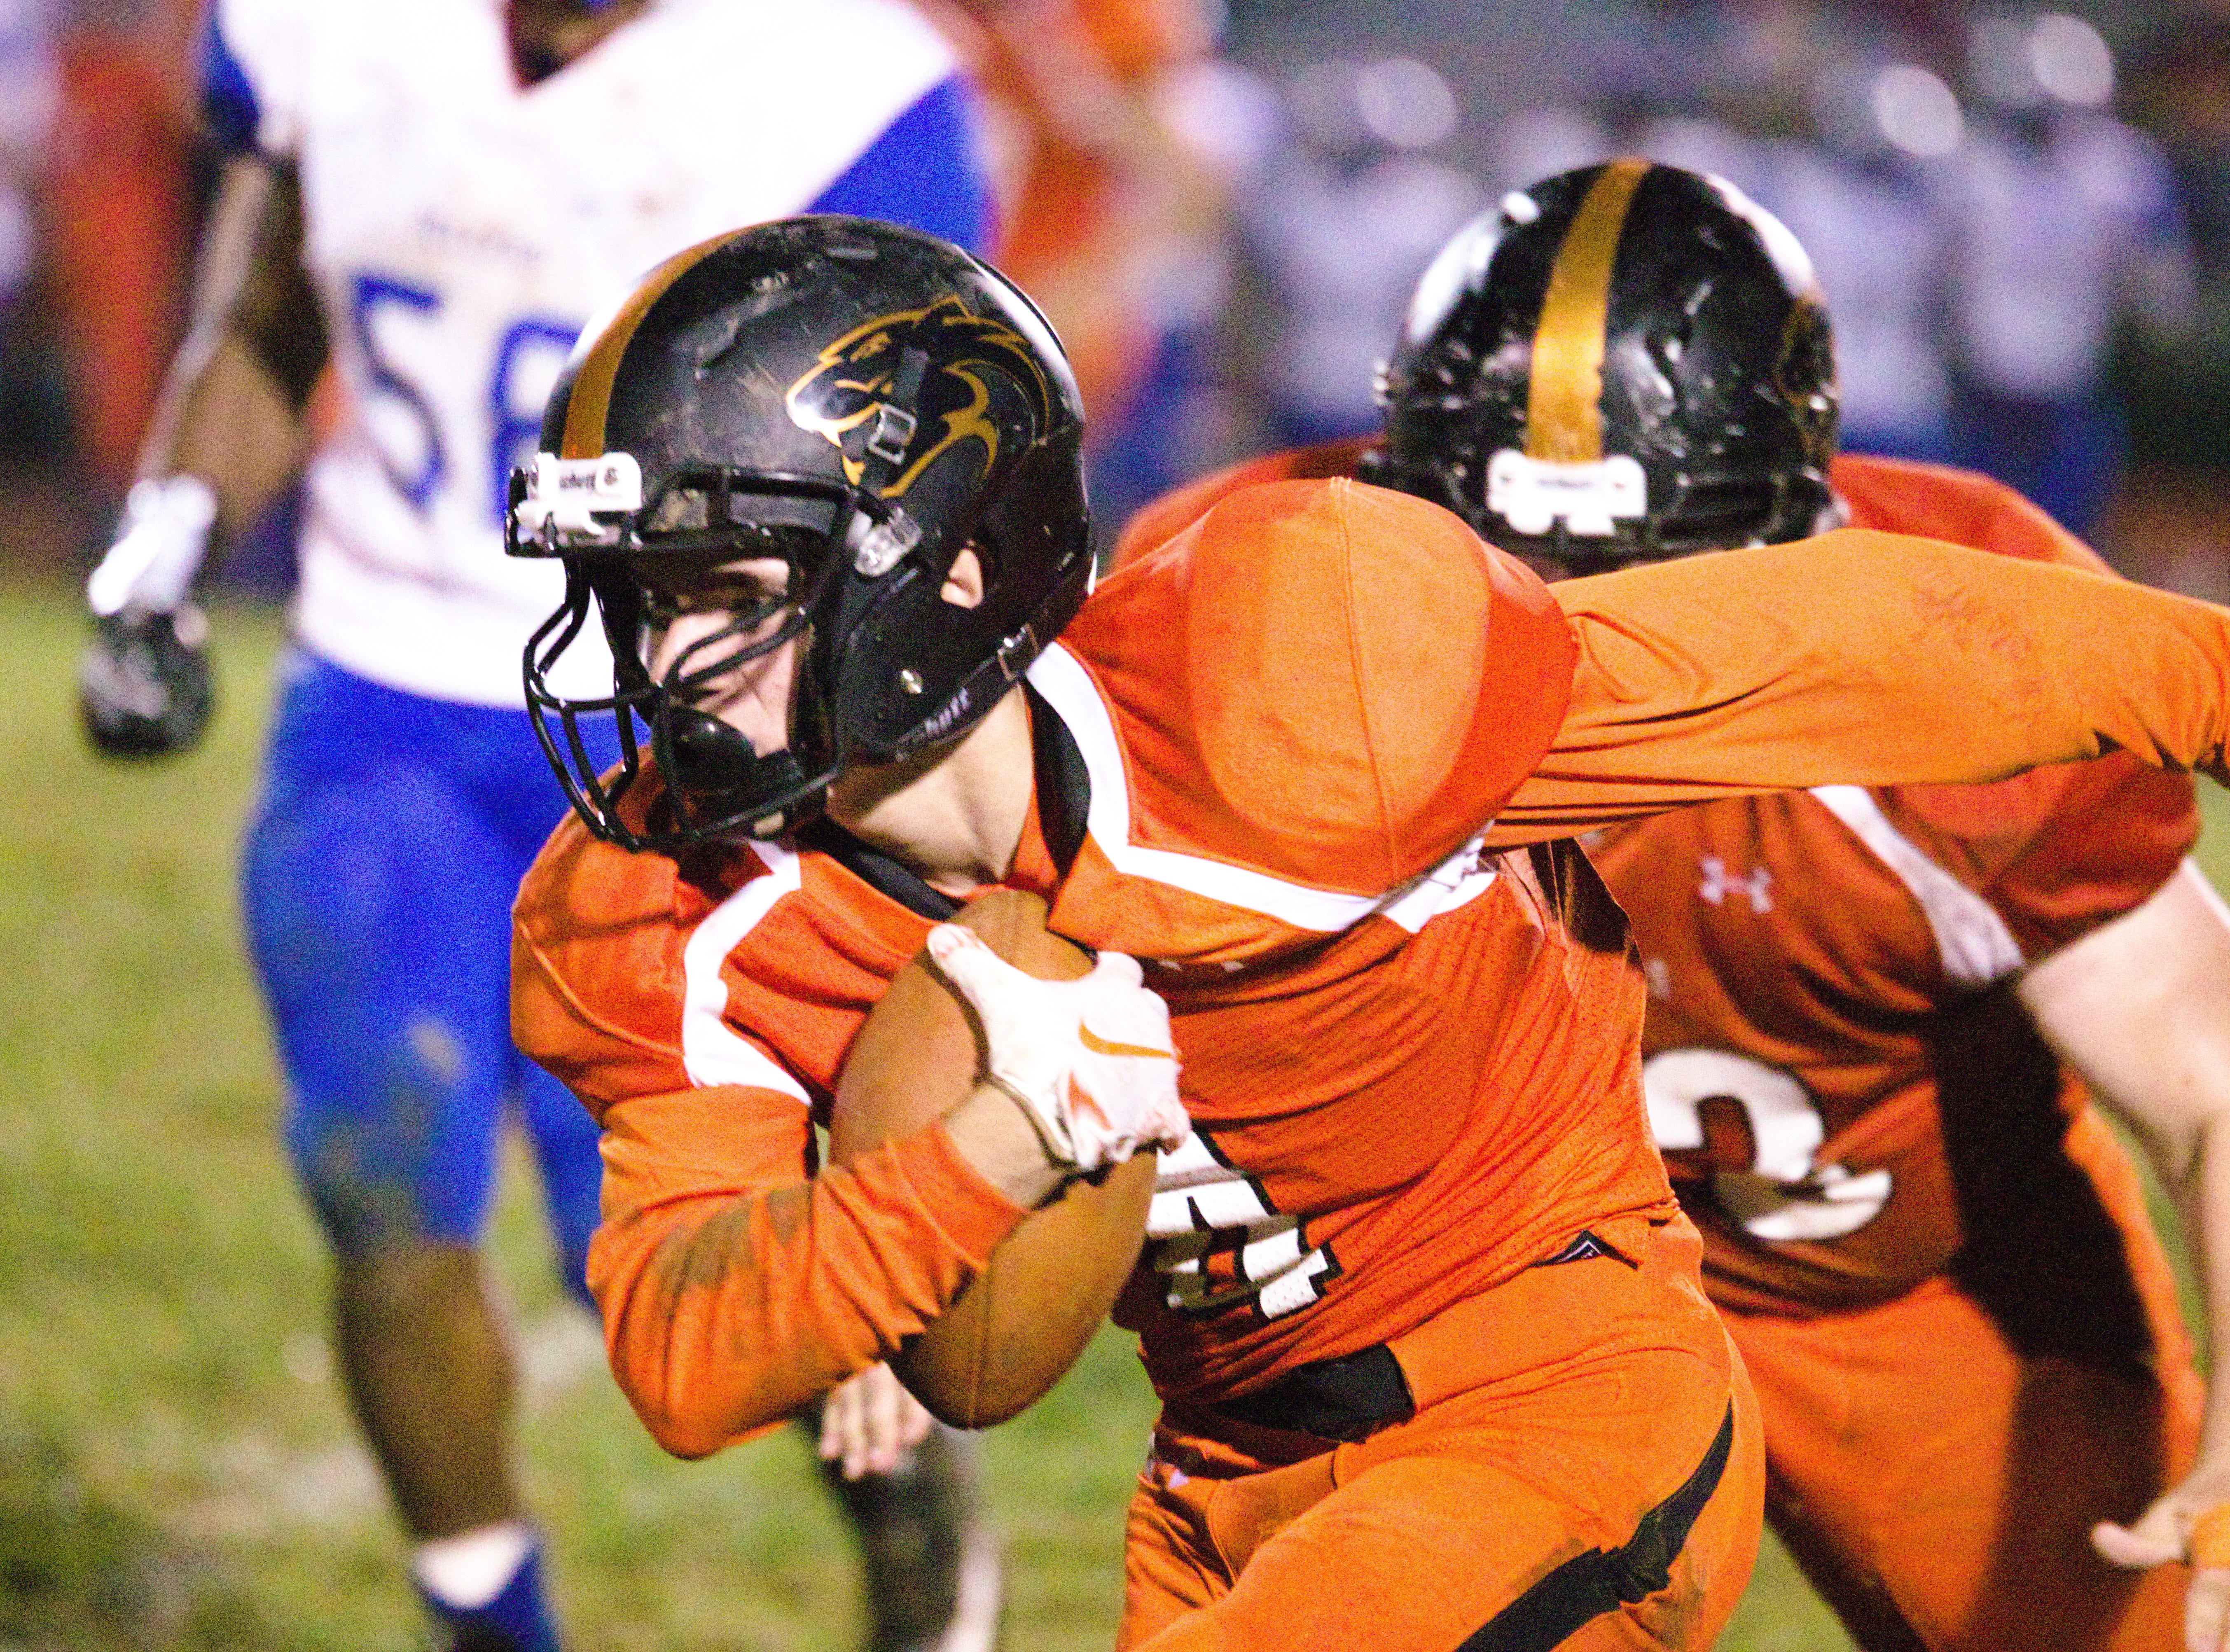 Palmyra's Nick Morder looks for running room after one of his 5 receptions.